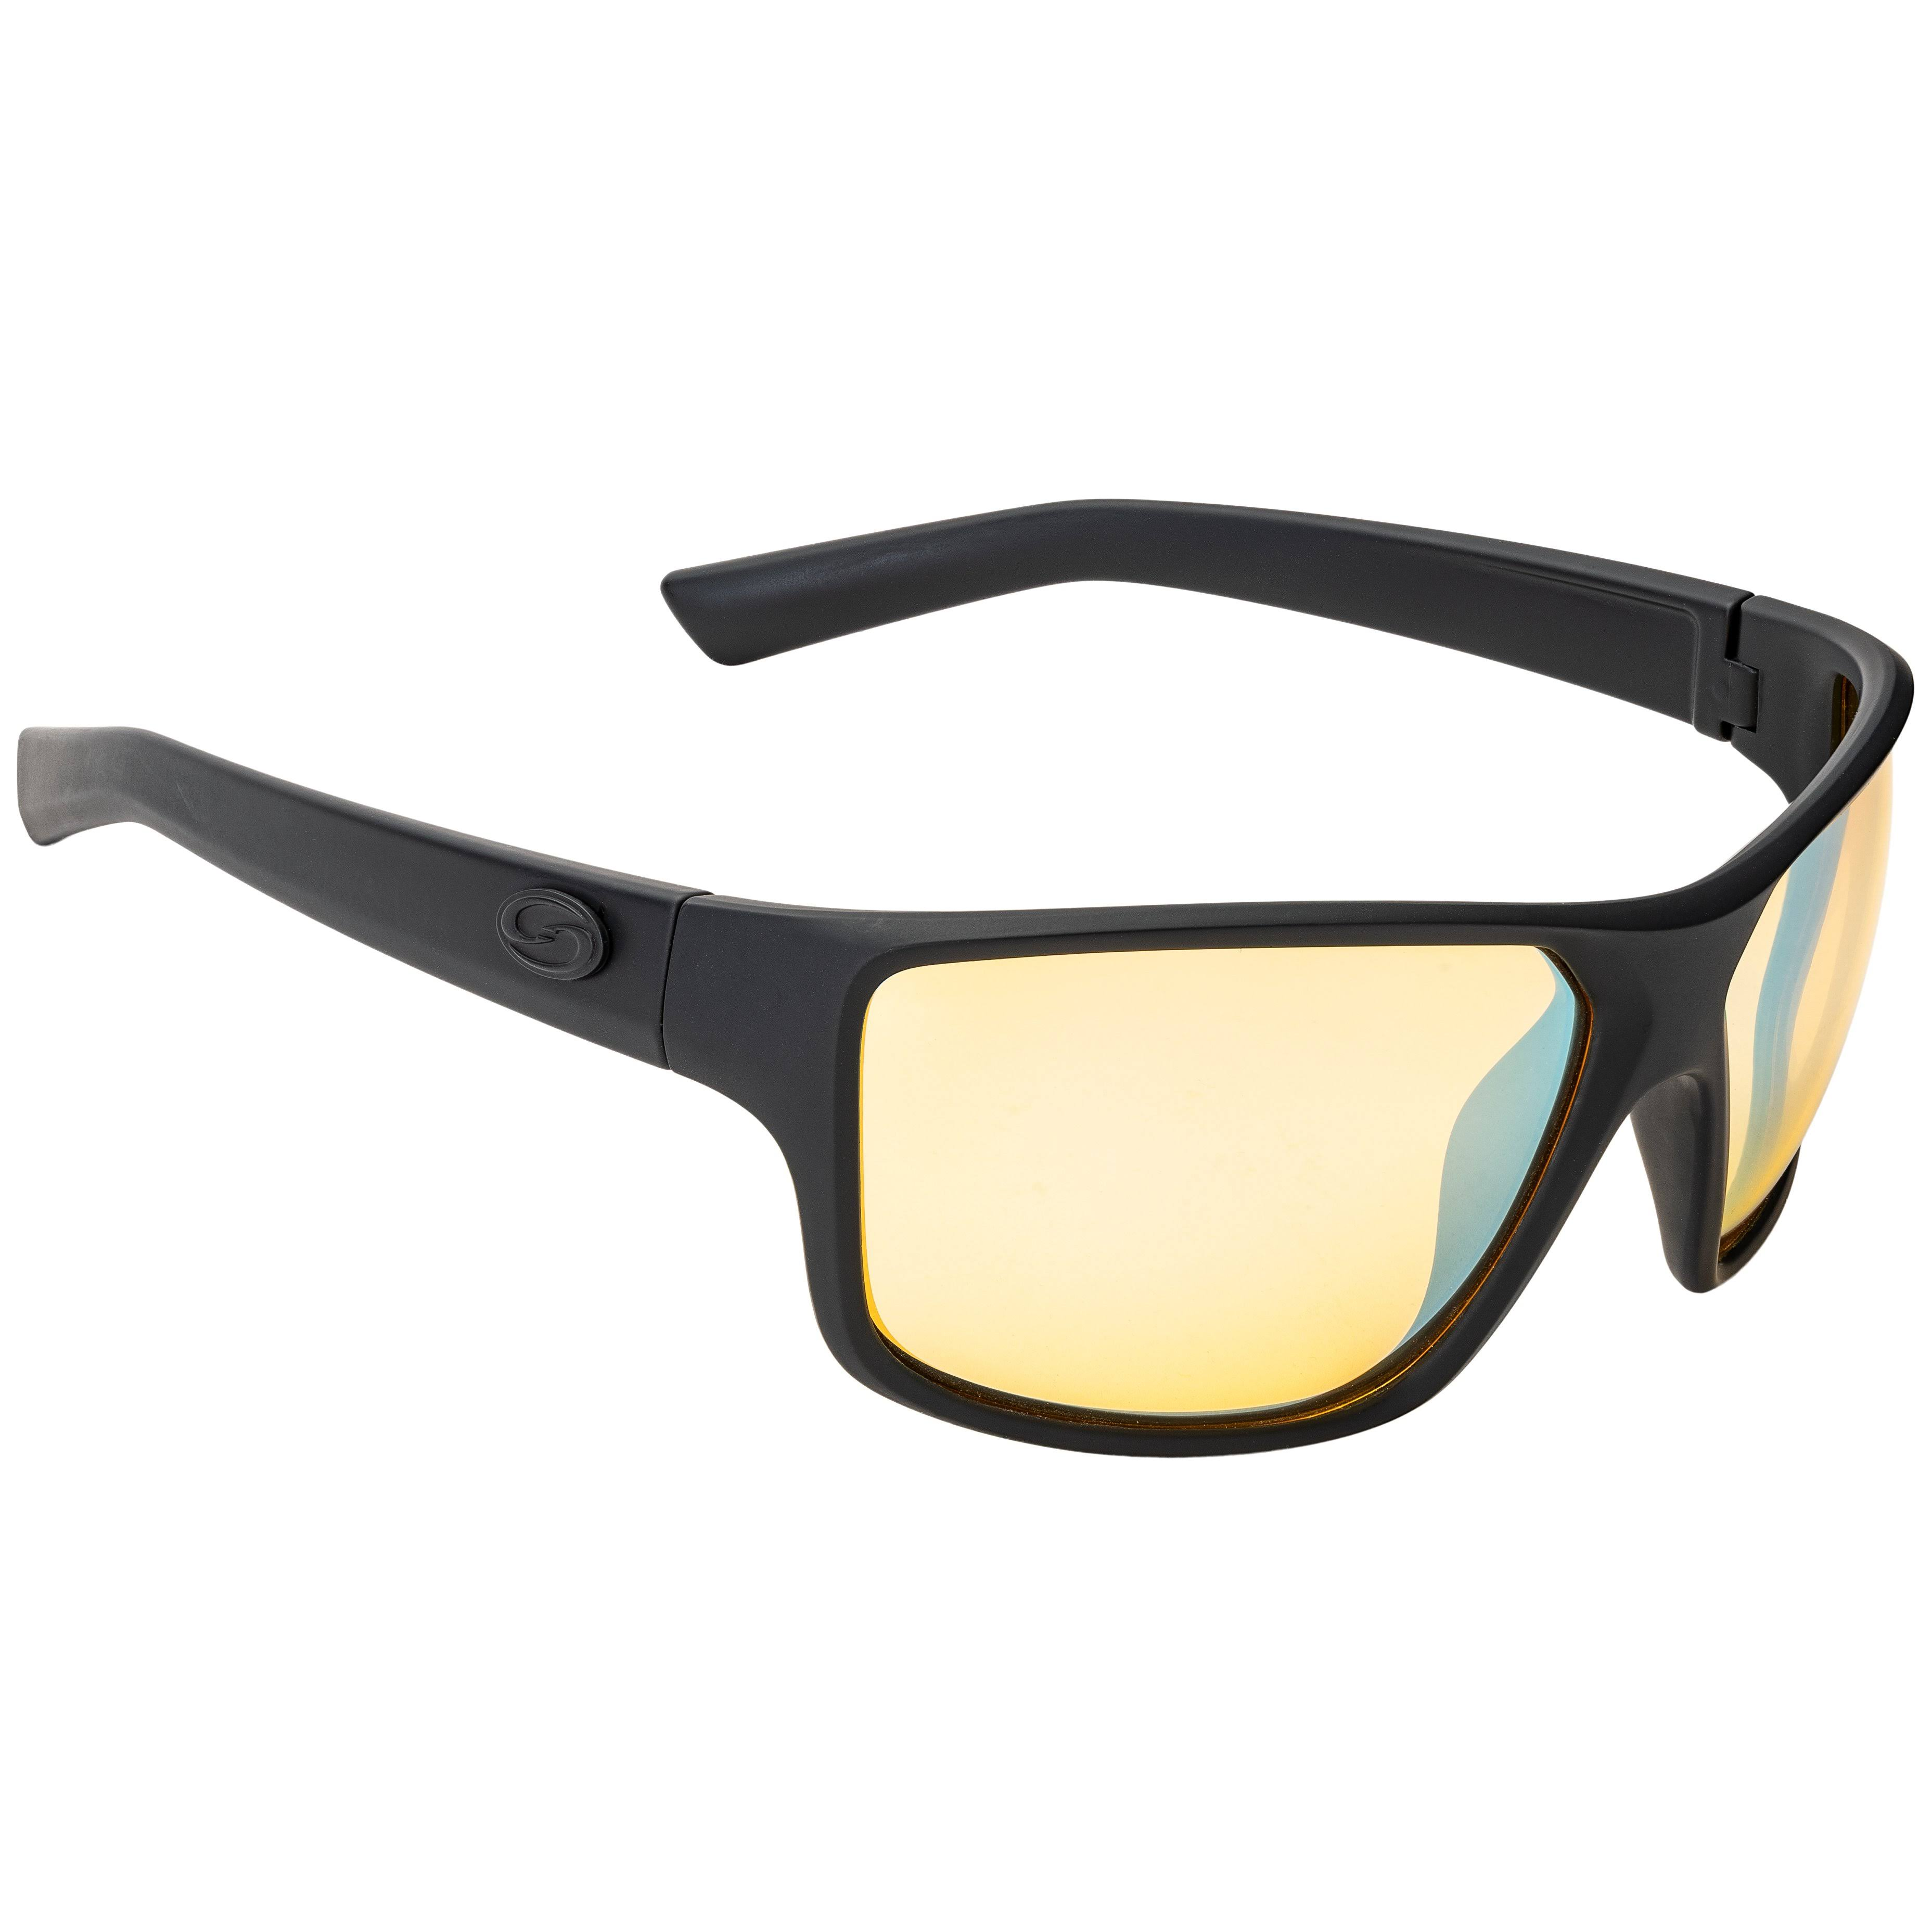 Strike King S11 Optics Clinch Sunglasses SG-S1140: Matte Black/Silver Mirror